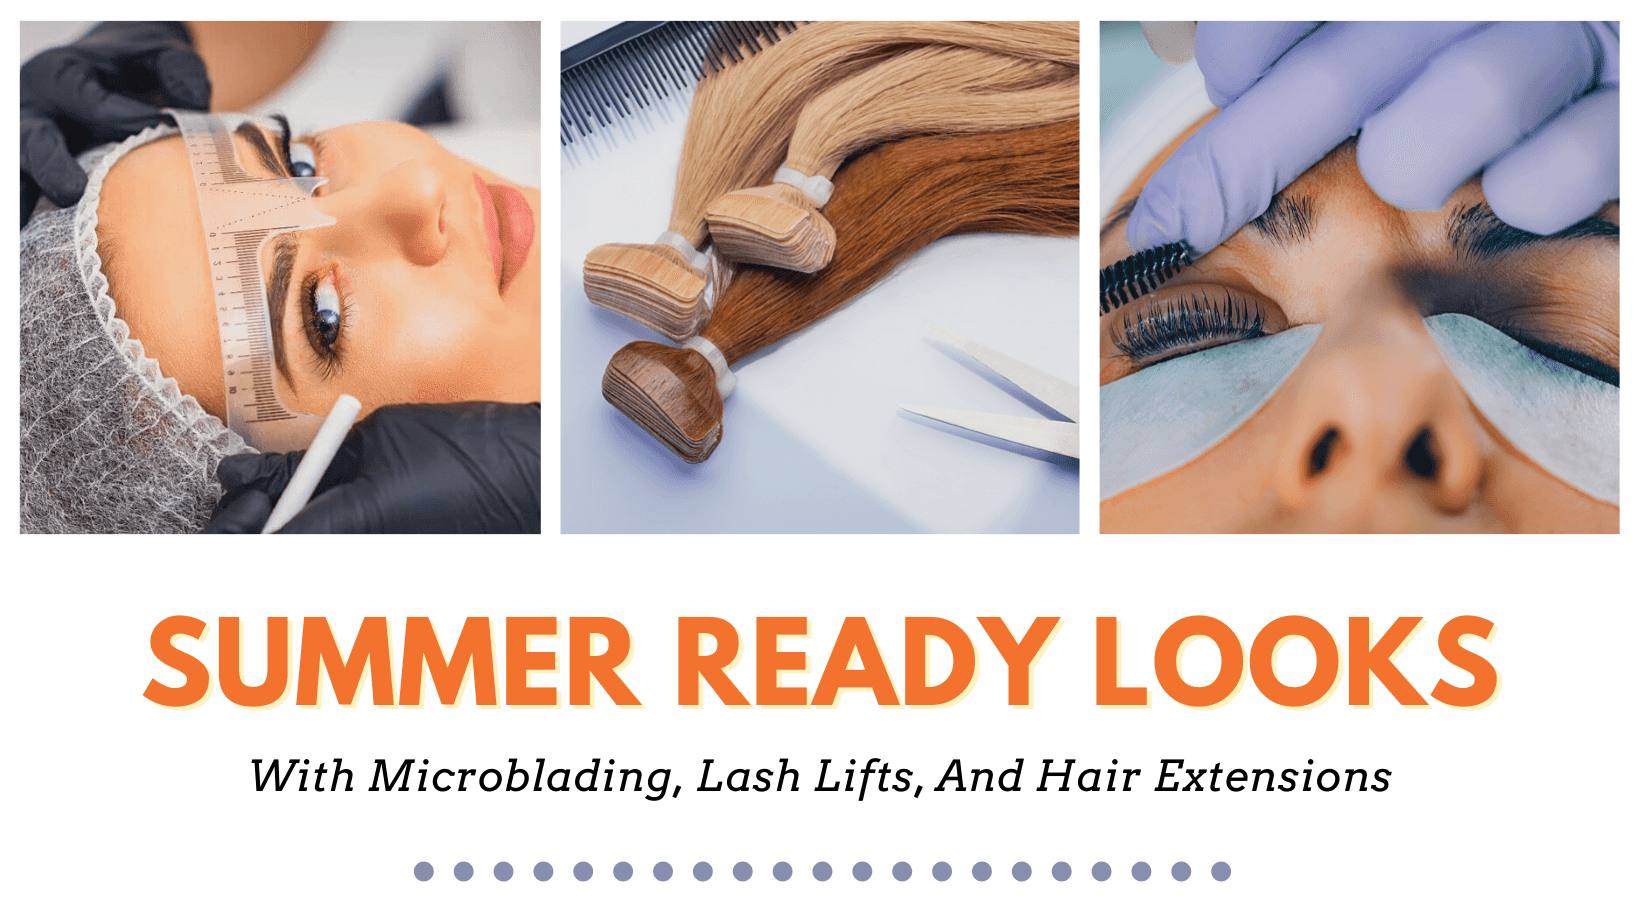 Summer Ready Looks With Microblading, Lash Lifts, And Hair Extensions By Barbies Beauty Bits